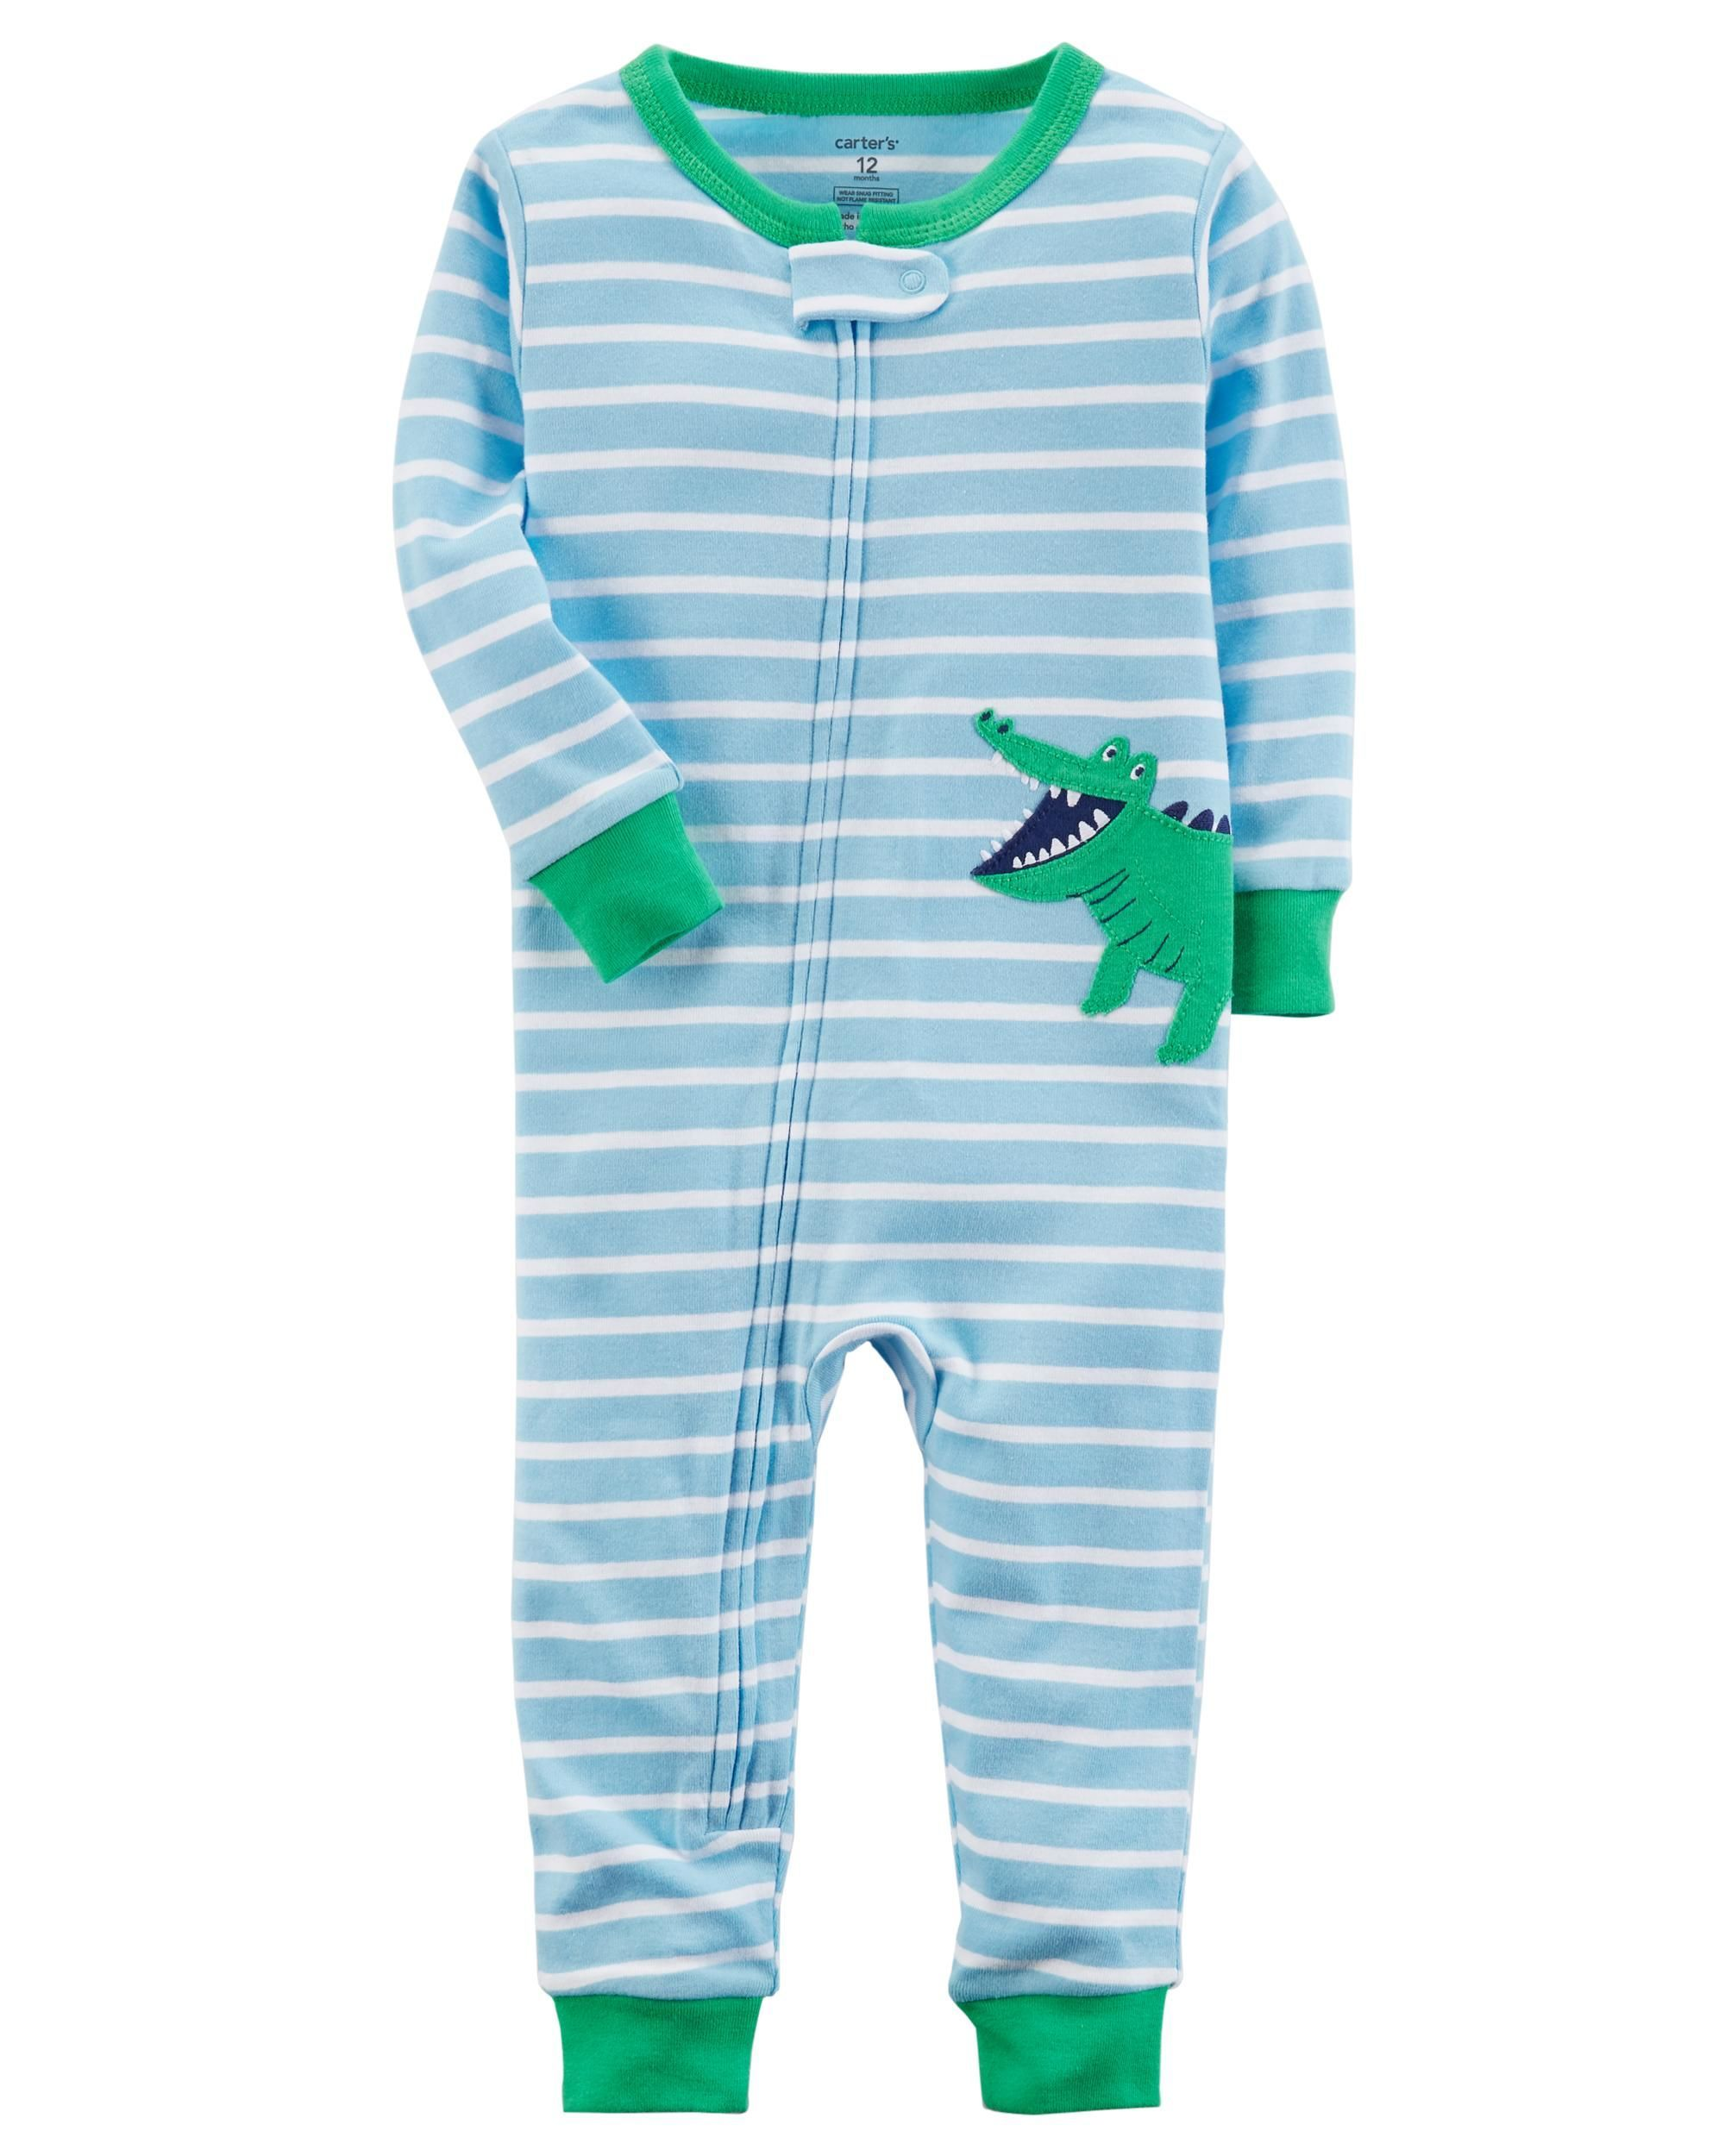 f327c337ac55 1-Piece Alligator Snug Fit Cotton Footless PJs